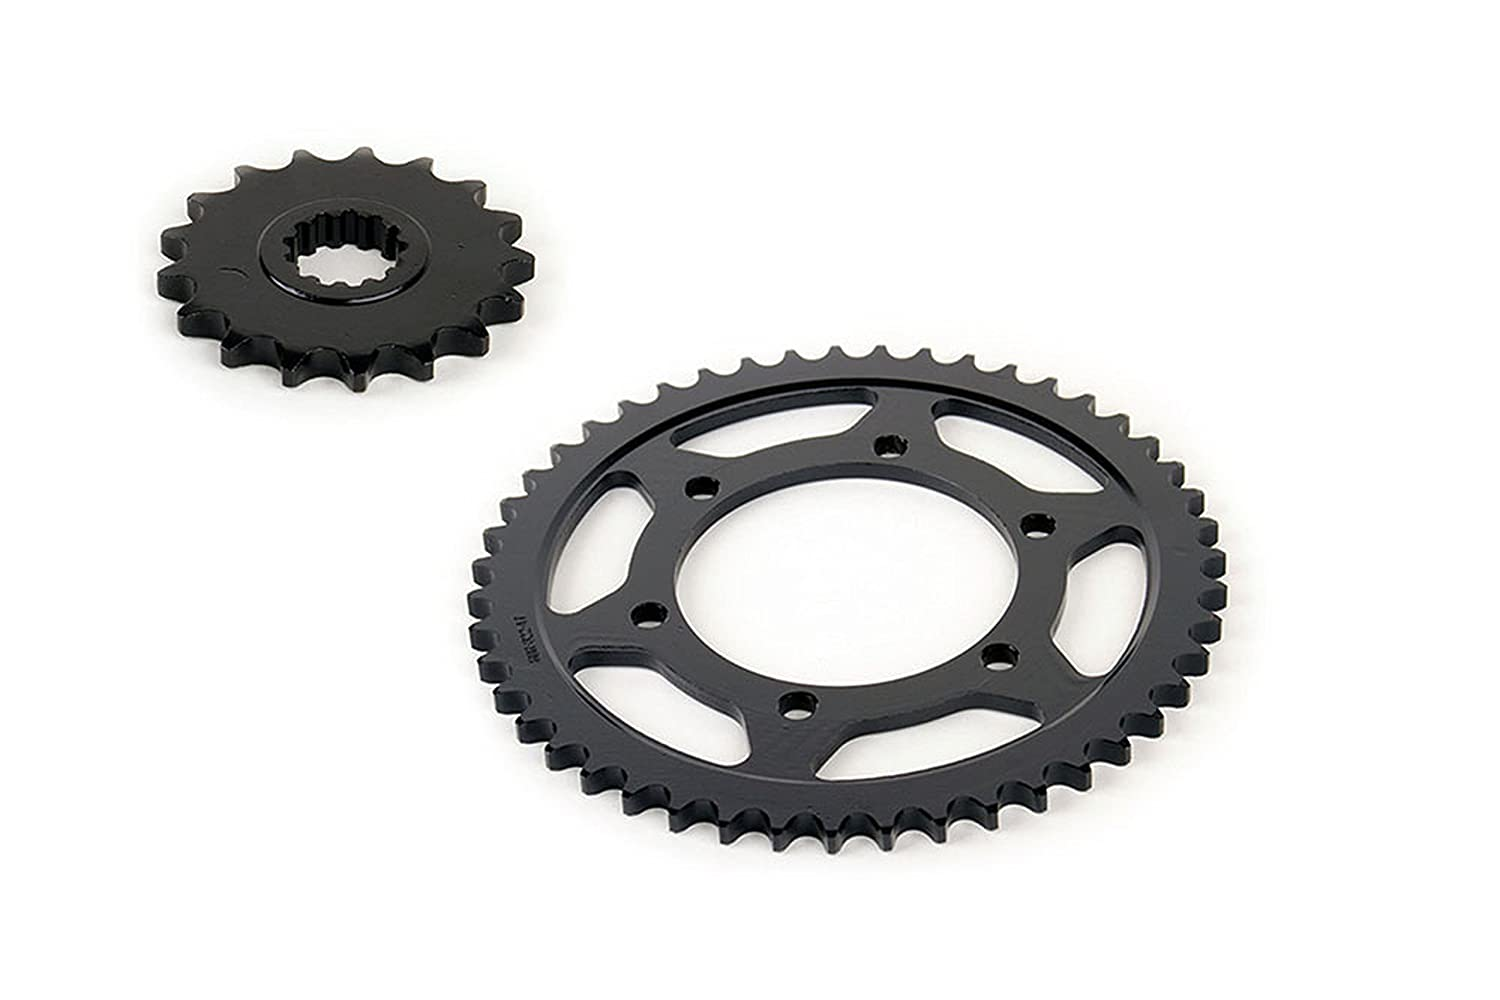 CZ SDZ Gold X Ring 120L Chain and Sprocket Kit 17//47 2009-2014 fits Yamaha YZF-R1 LE